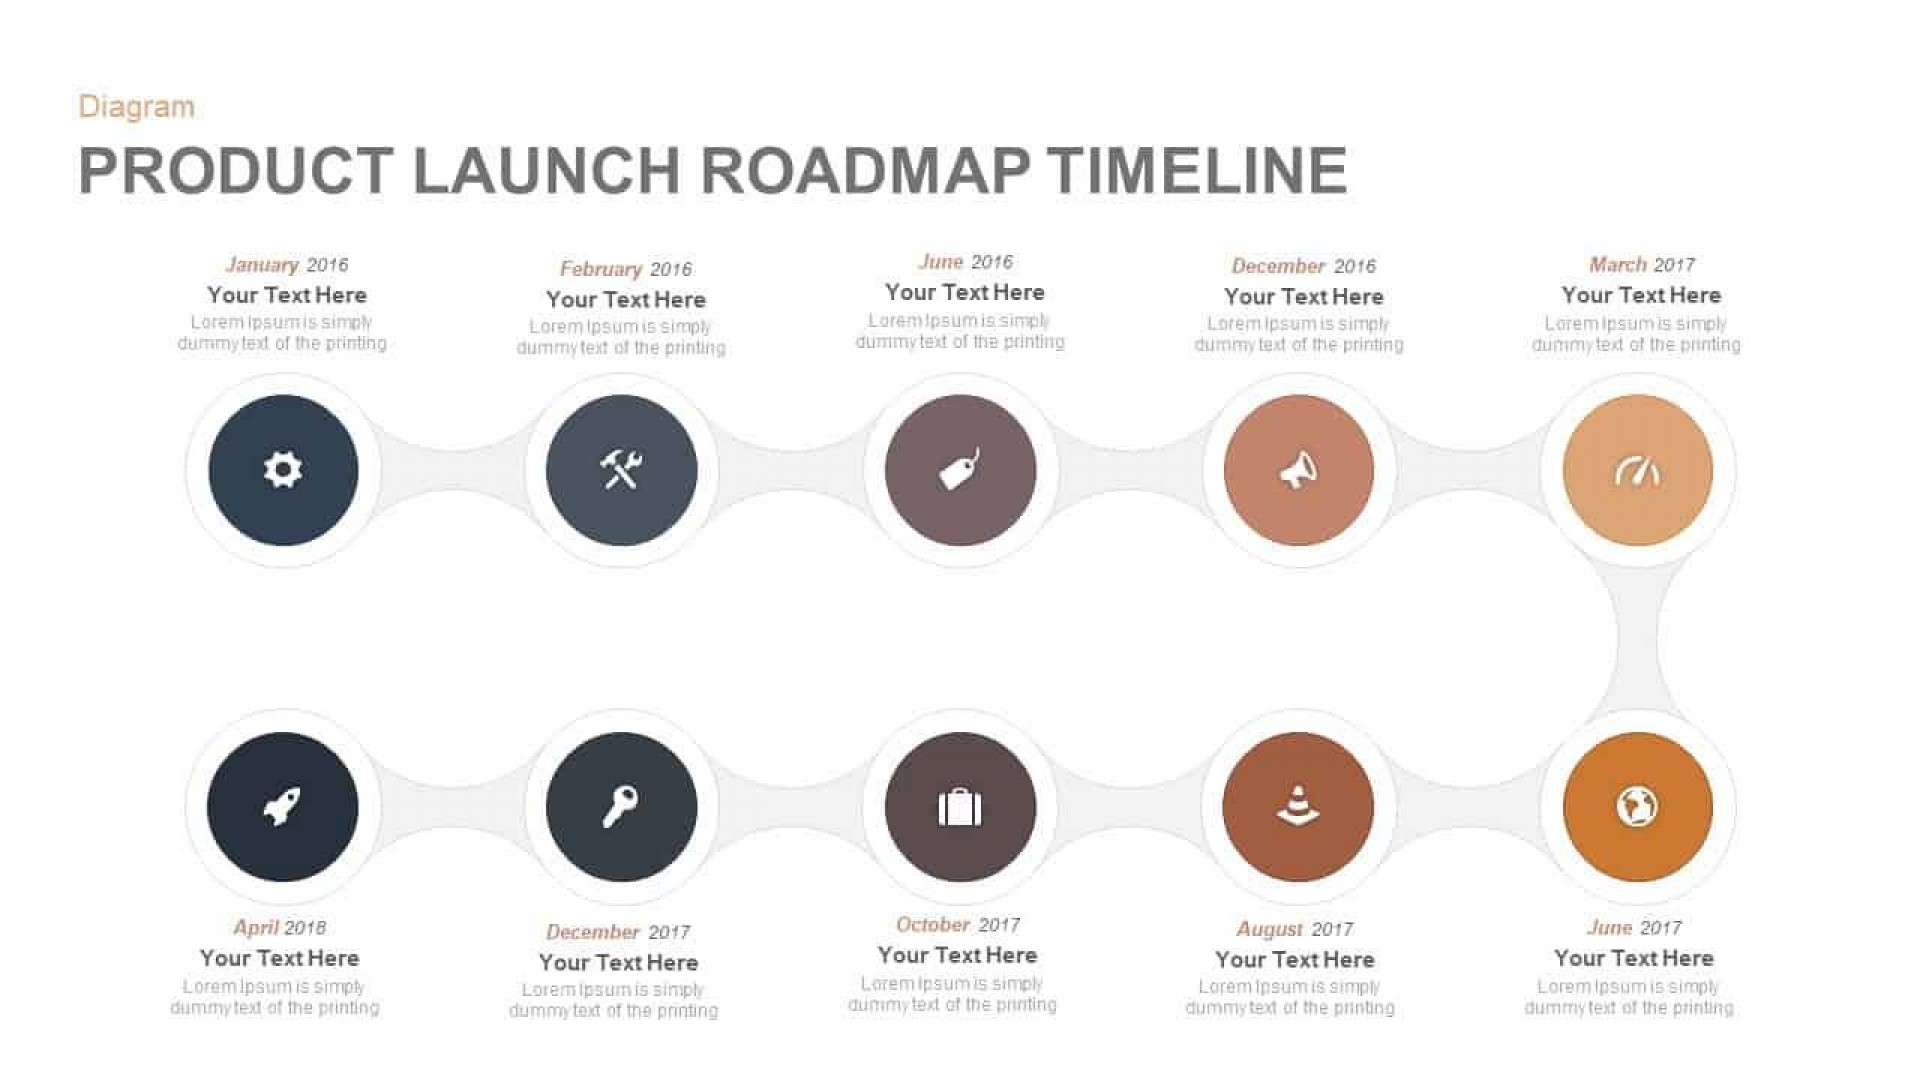 009 Wondrou Product Launch Plan Powerpoint Template Free High Definition 1920